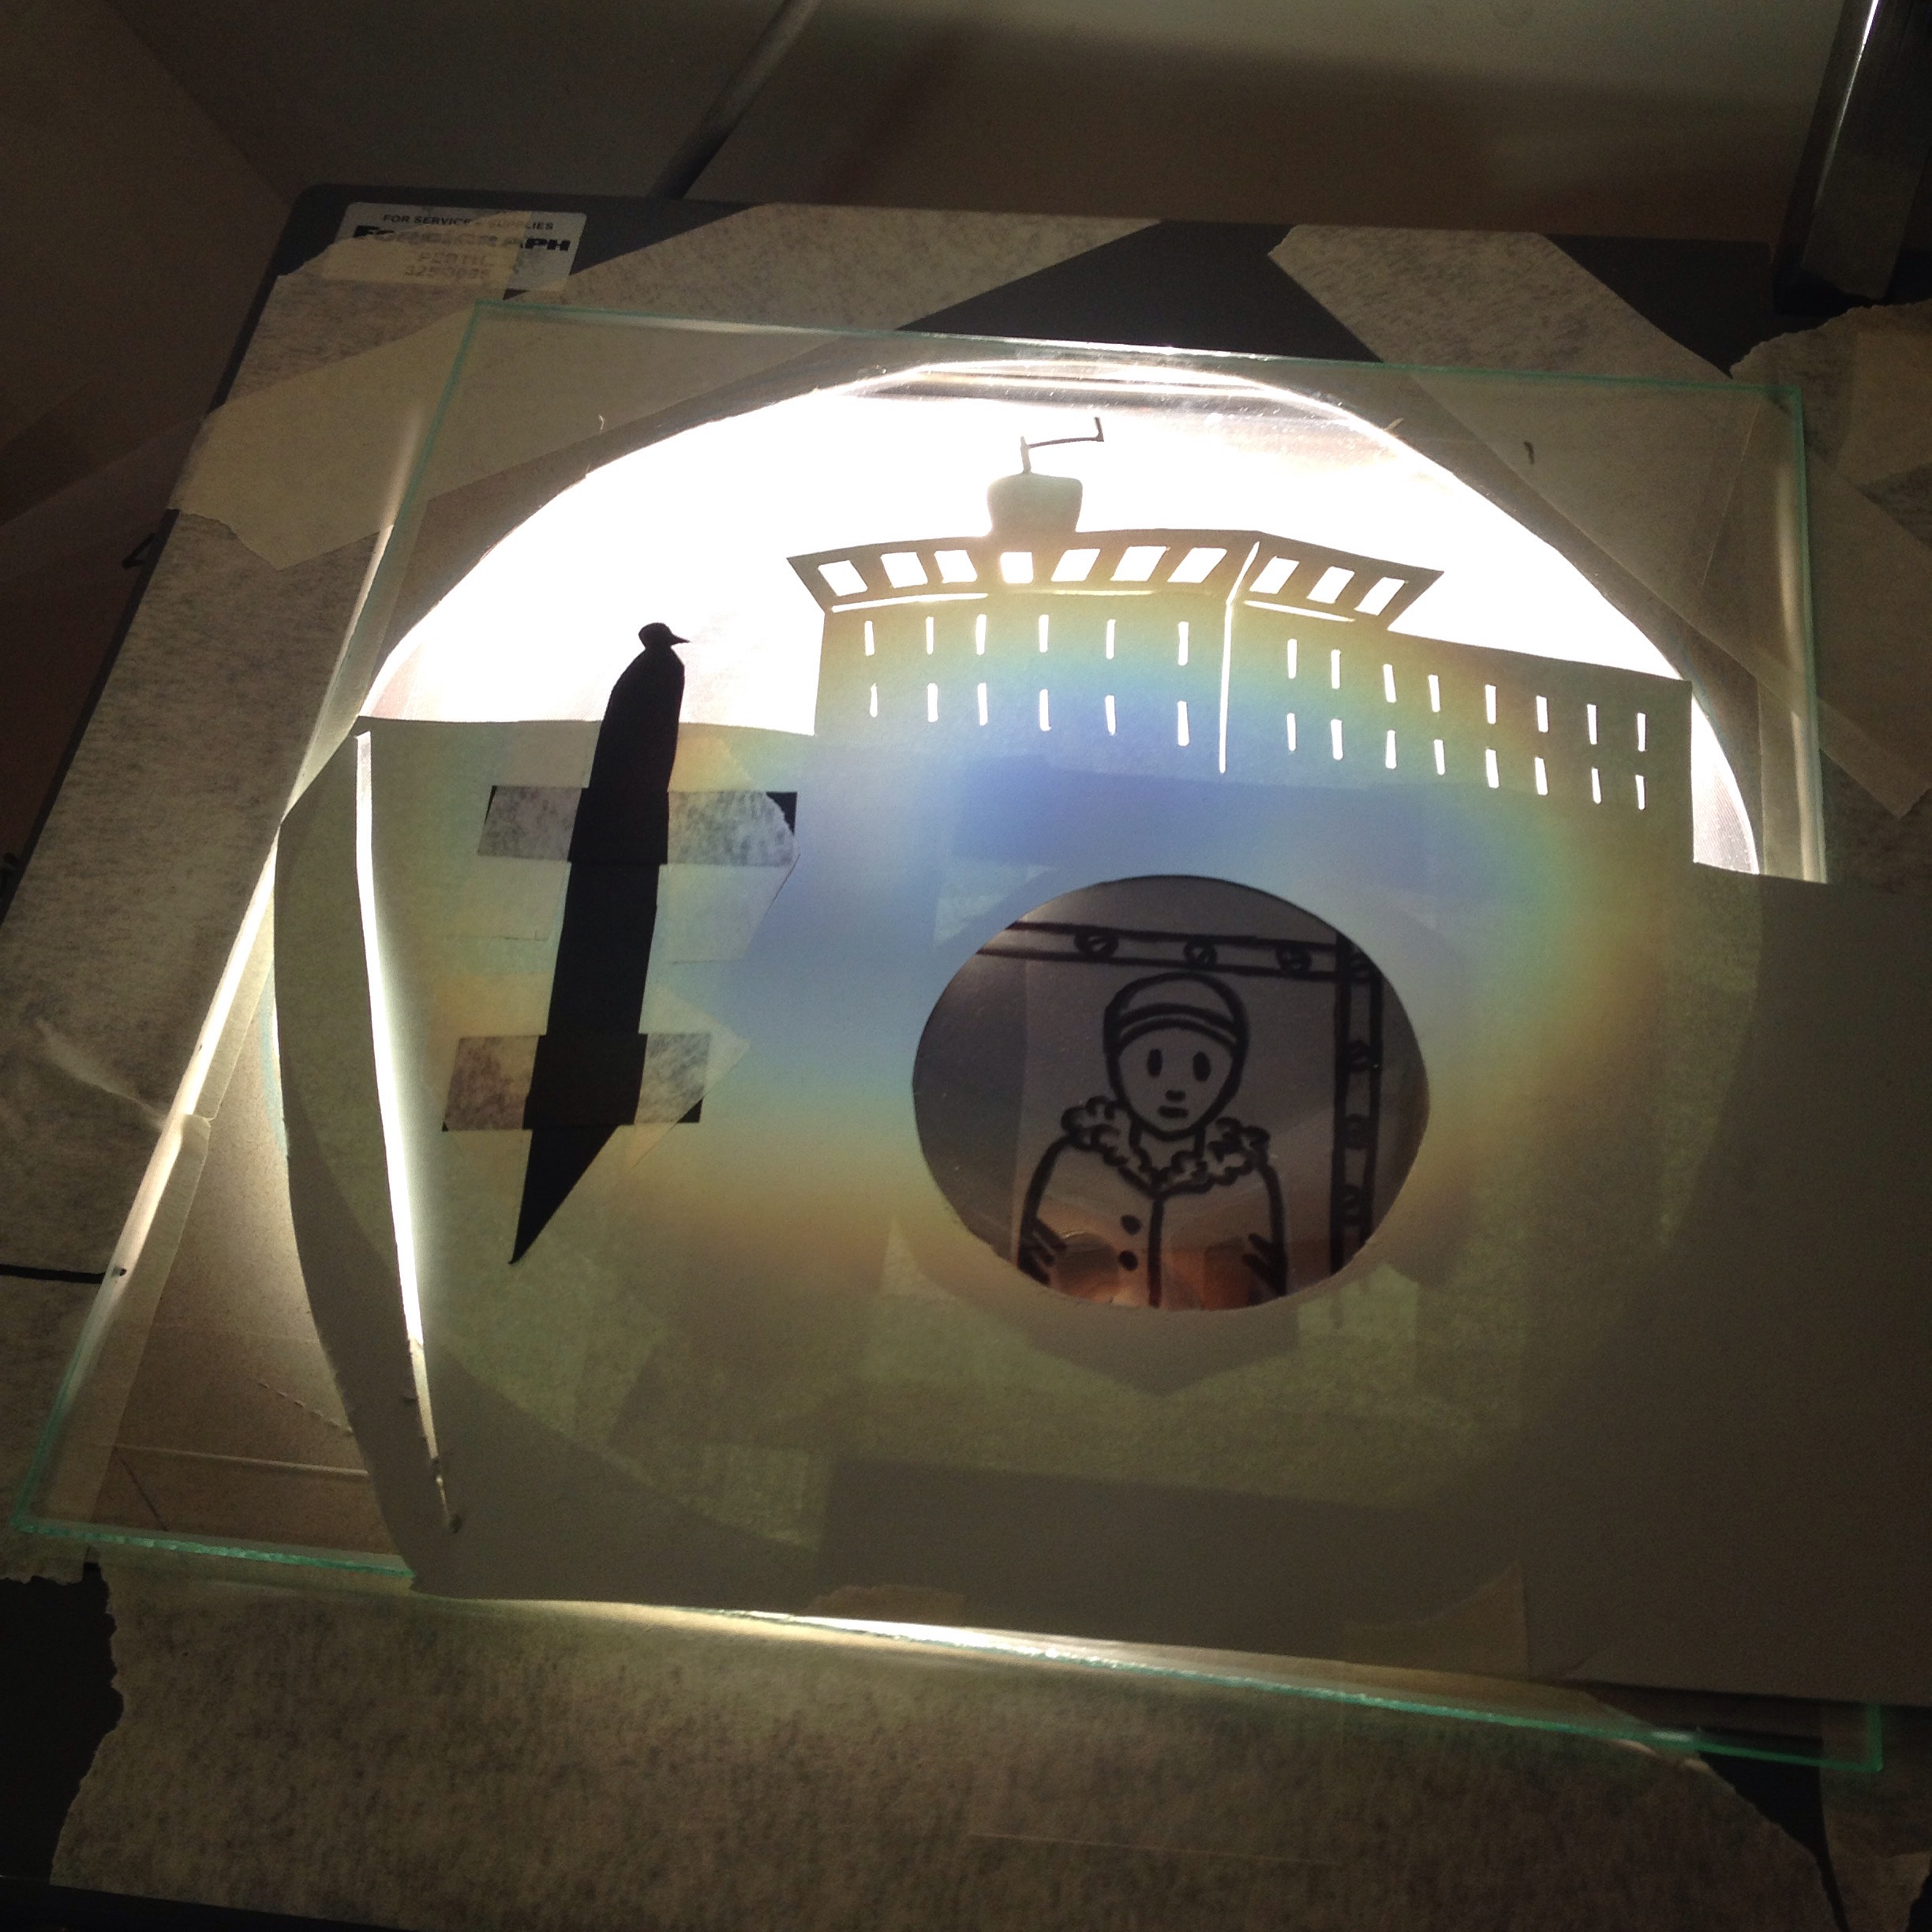 Puppets on the overhead projector